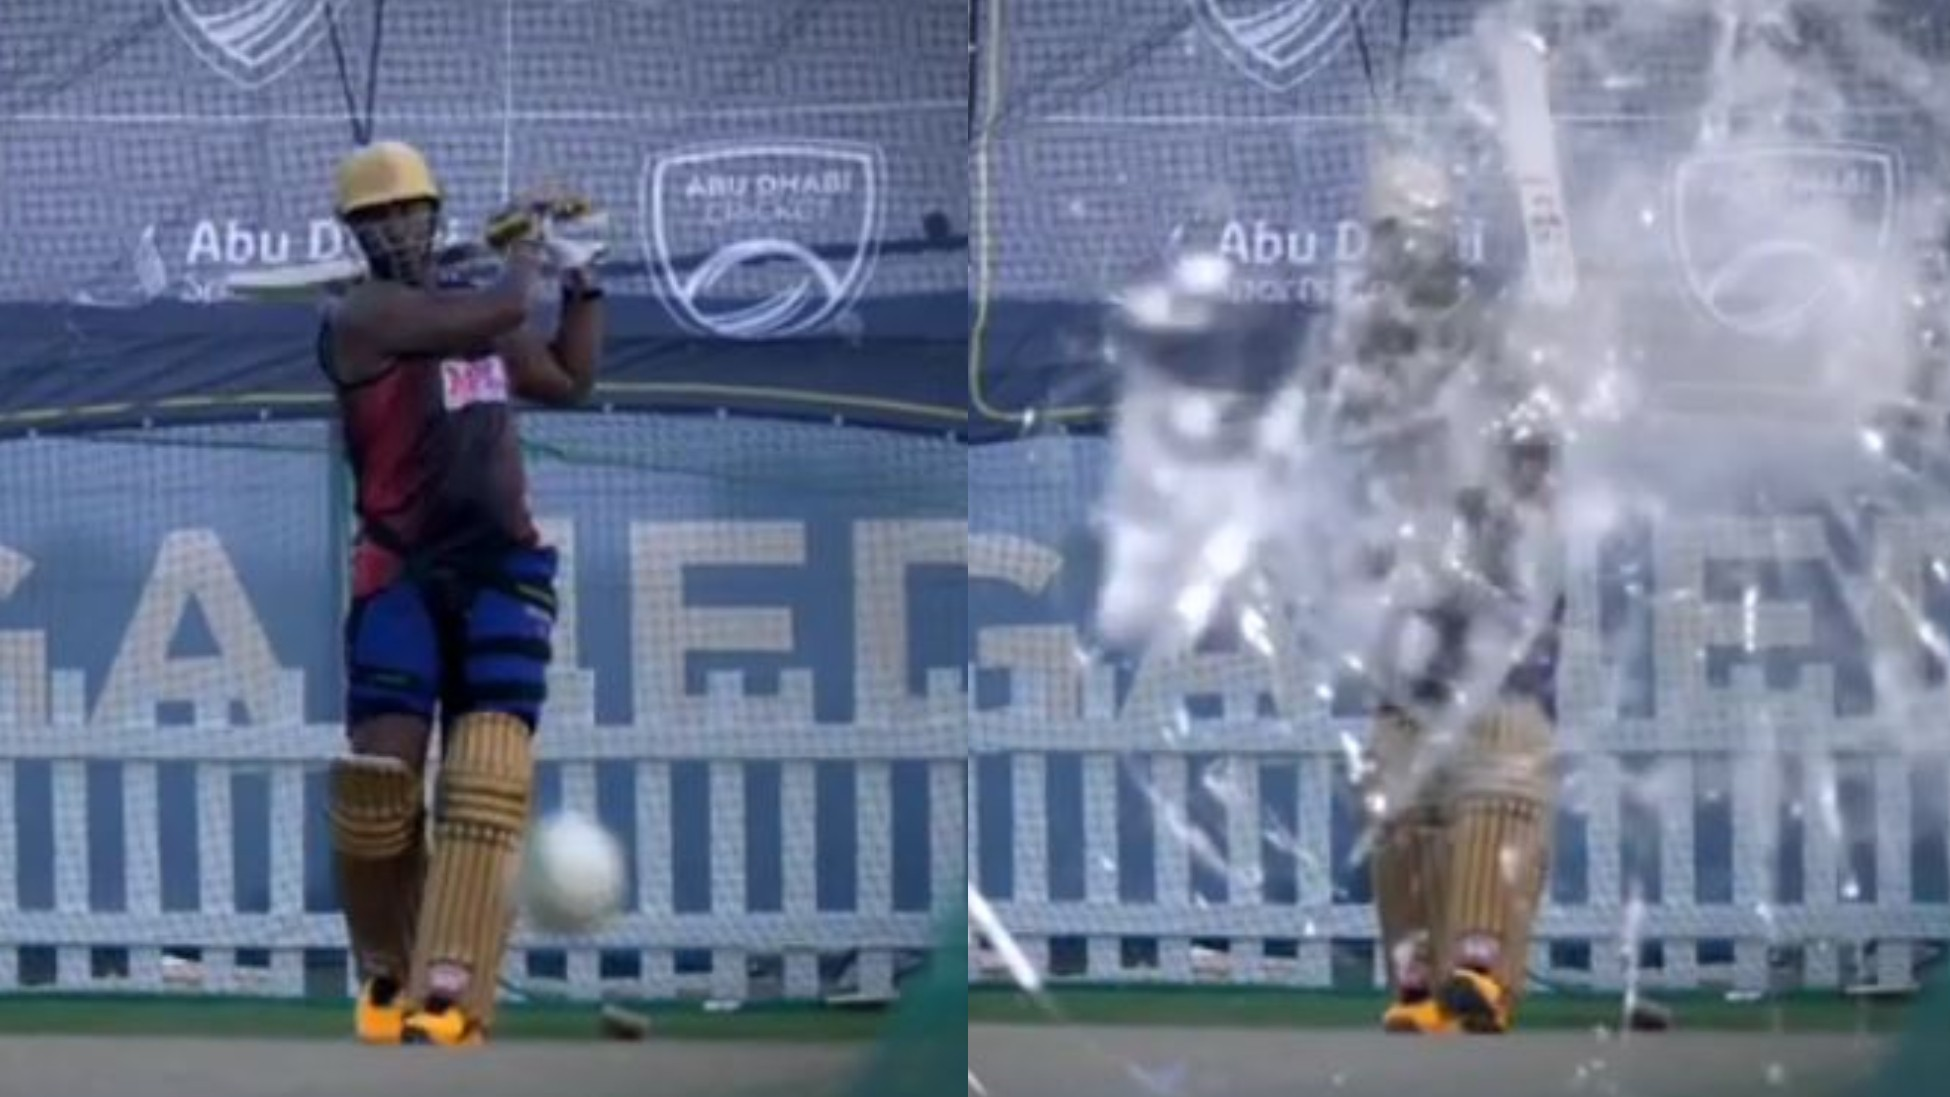 IPL 2020: WATCH- Andre Russell says 'Sorry' after breaking a camera during net session